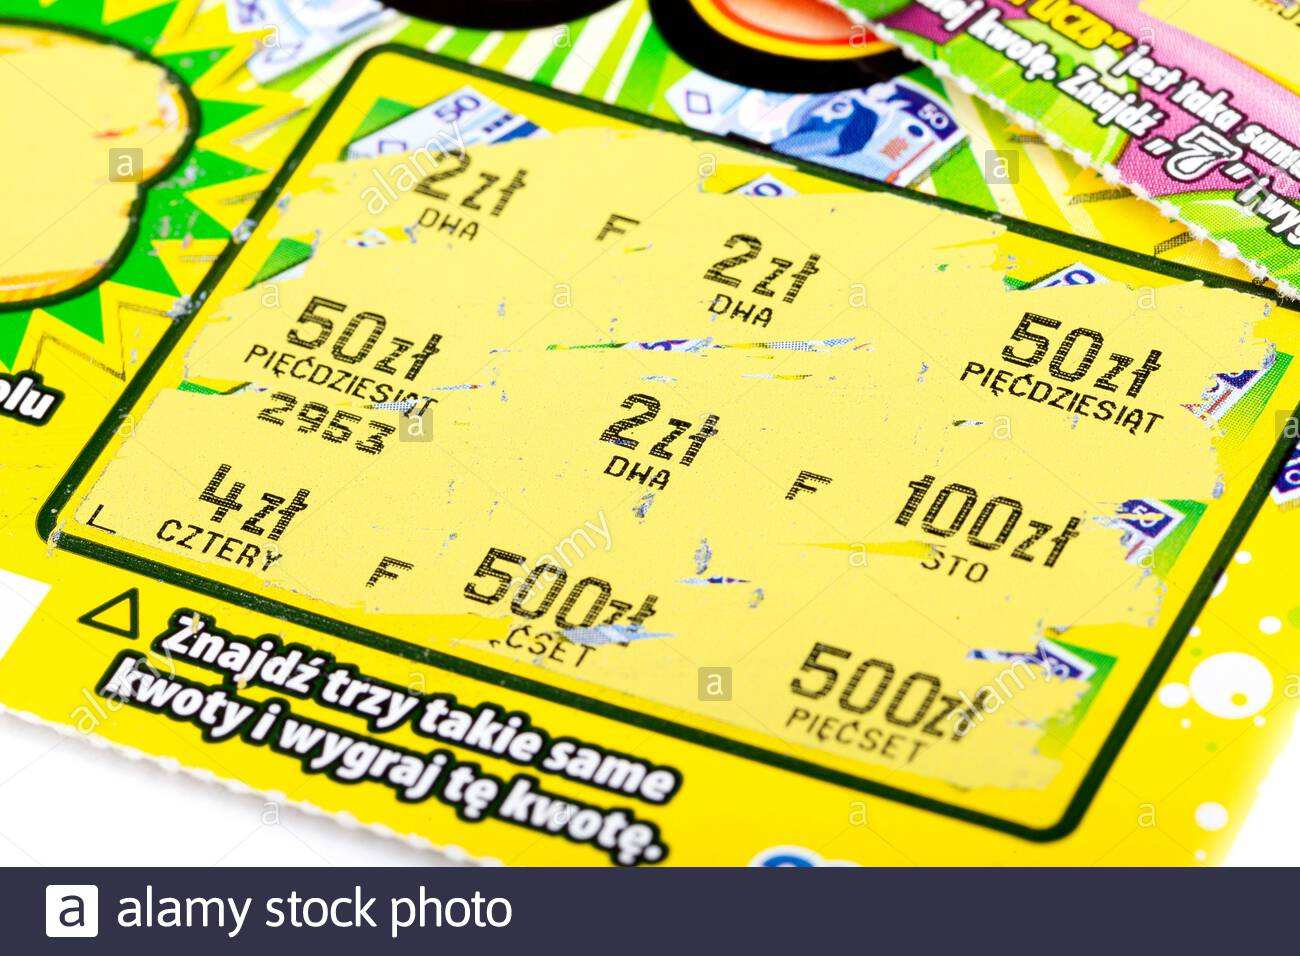 Polish lotto results - official polish lotto winning numbers